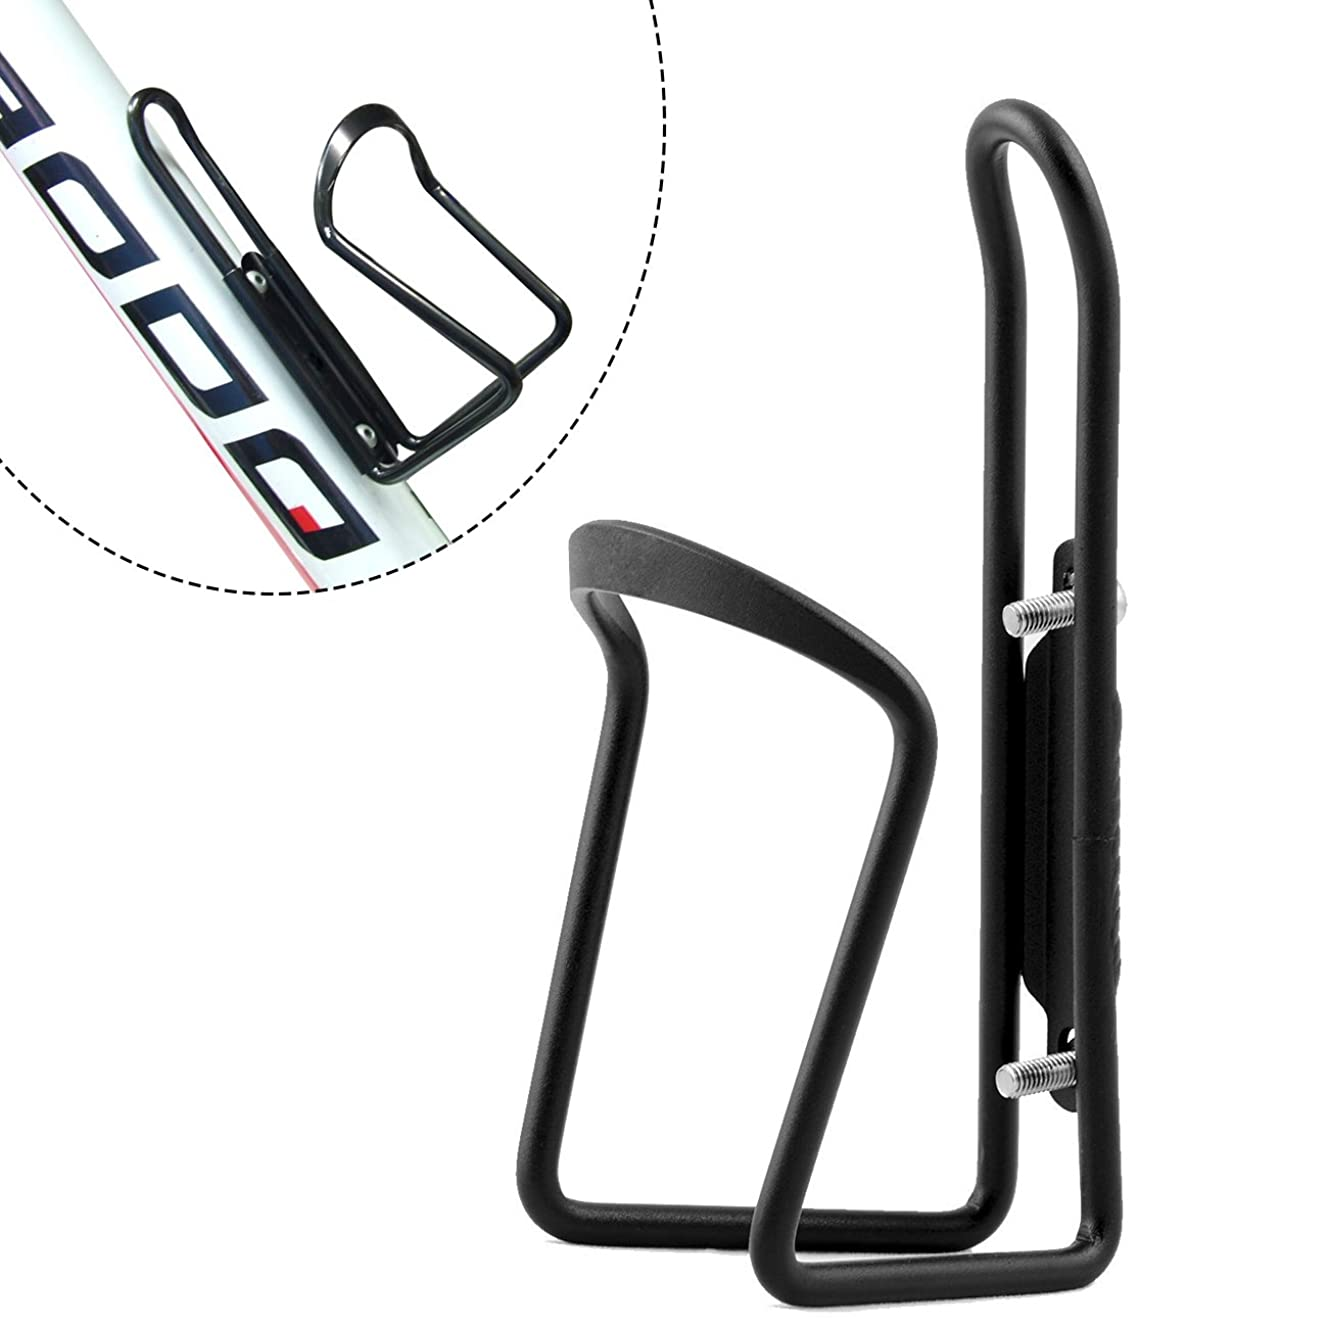 FiveBox Lightweight Aluminum Alloy Bicycle Water Bottle Cage Holder for Outdoor Activities